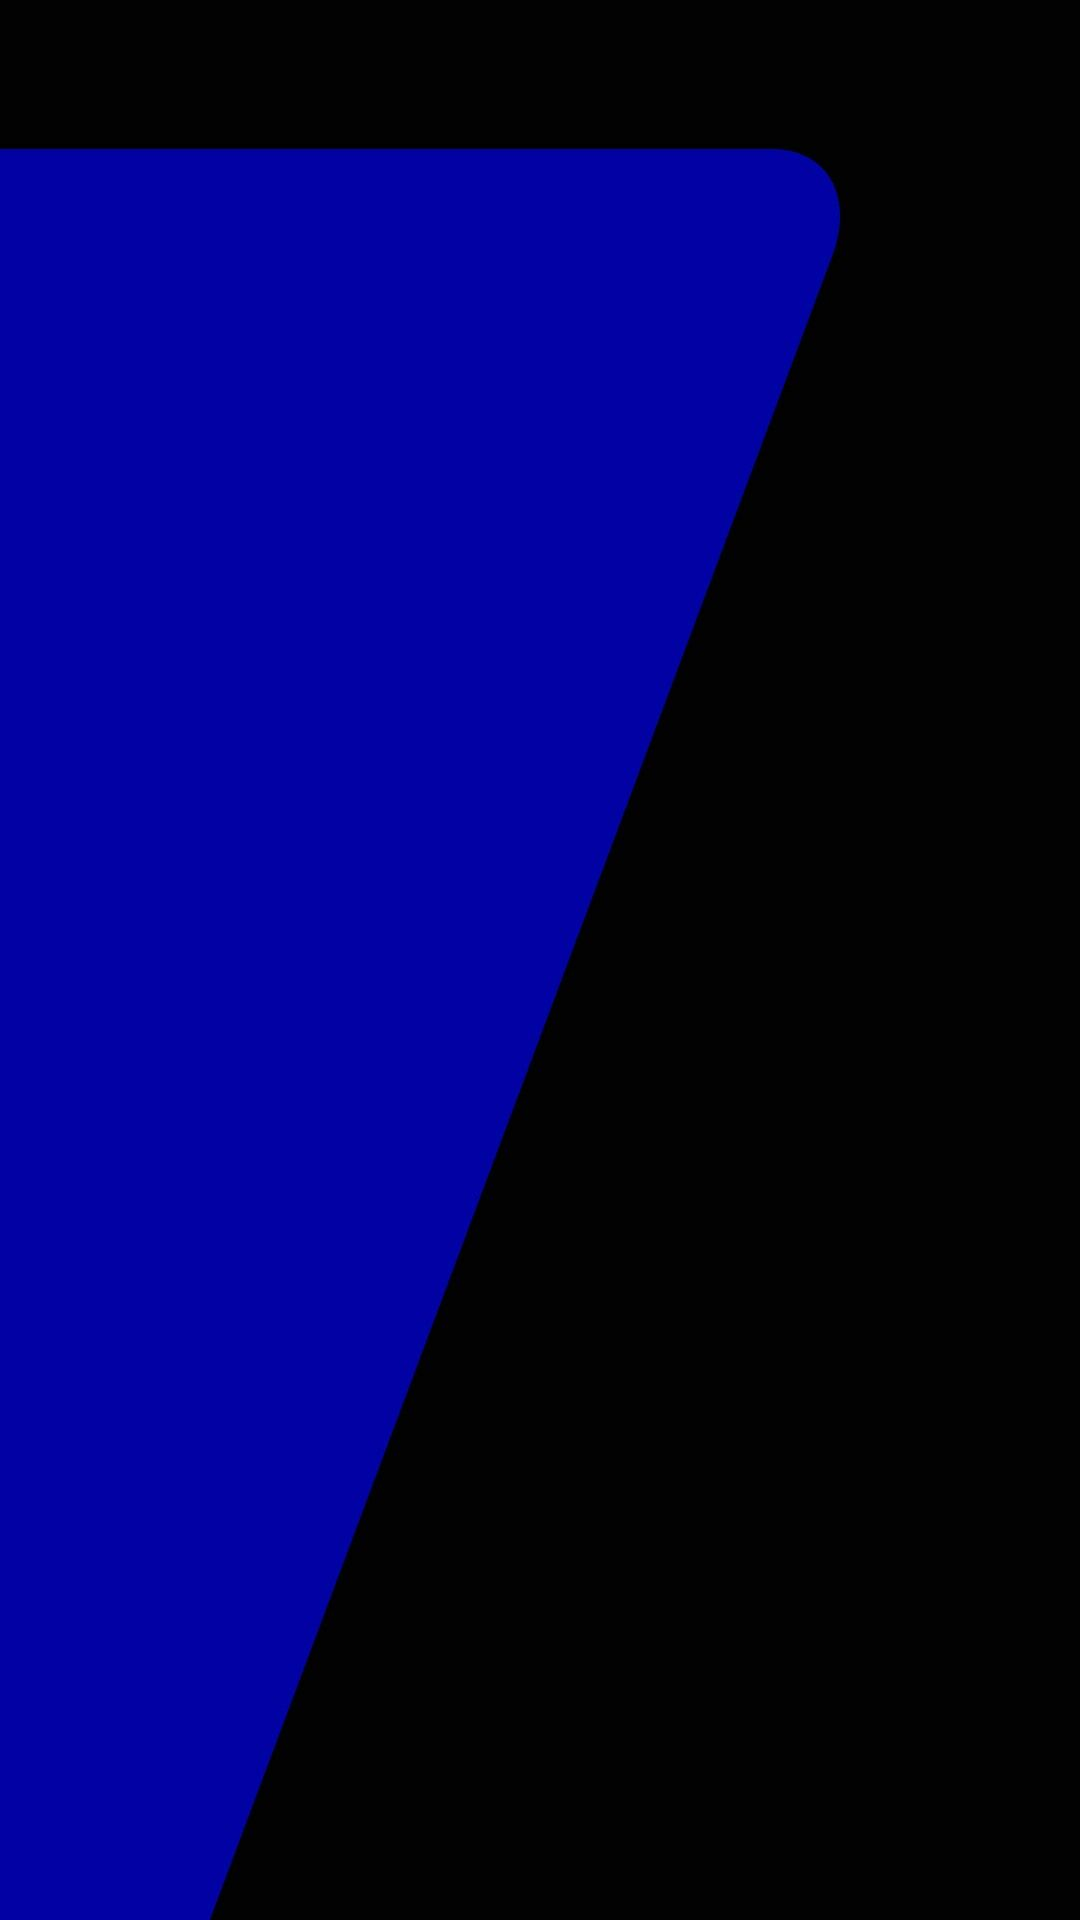 Hitam Biru Android Wallpapers Wallpaper Cave